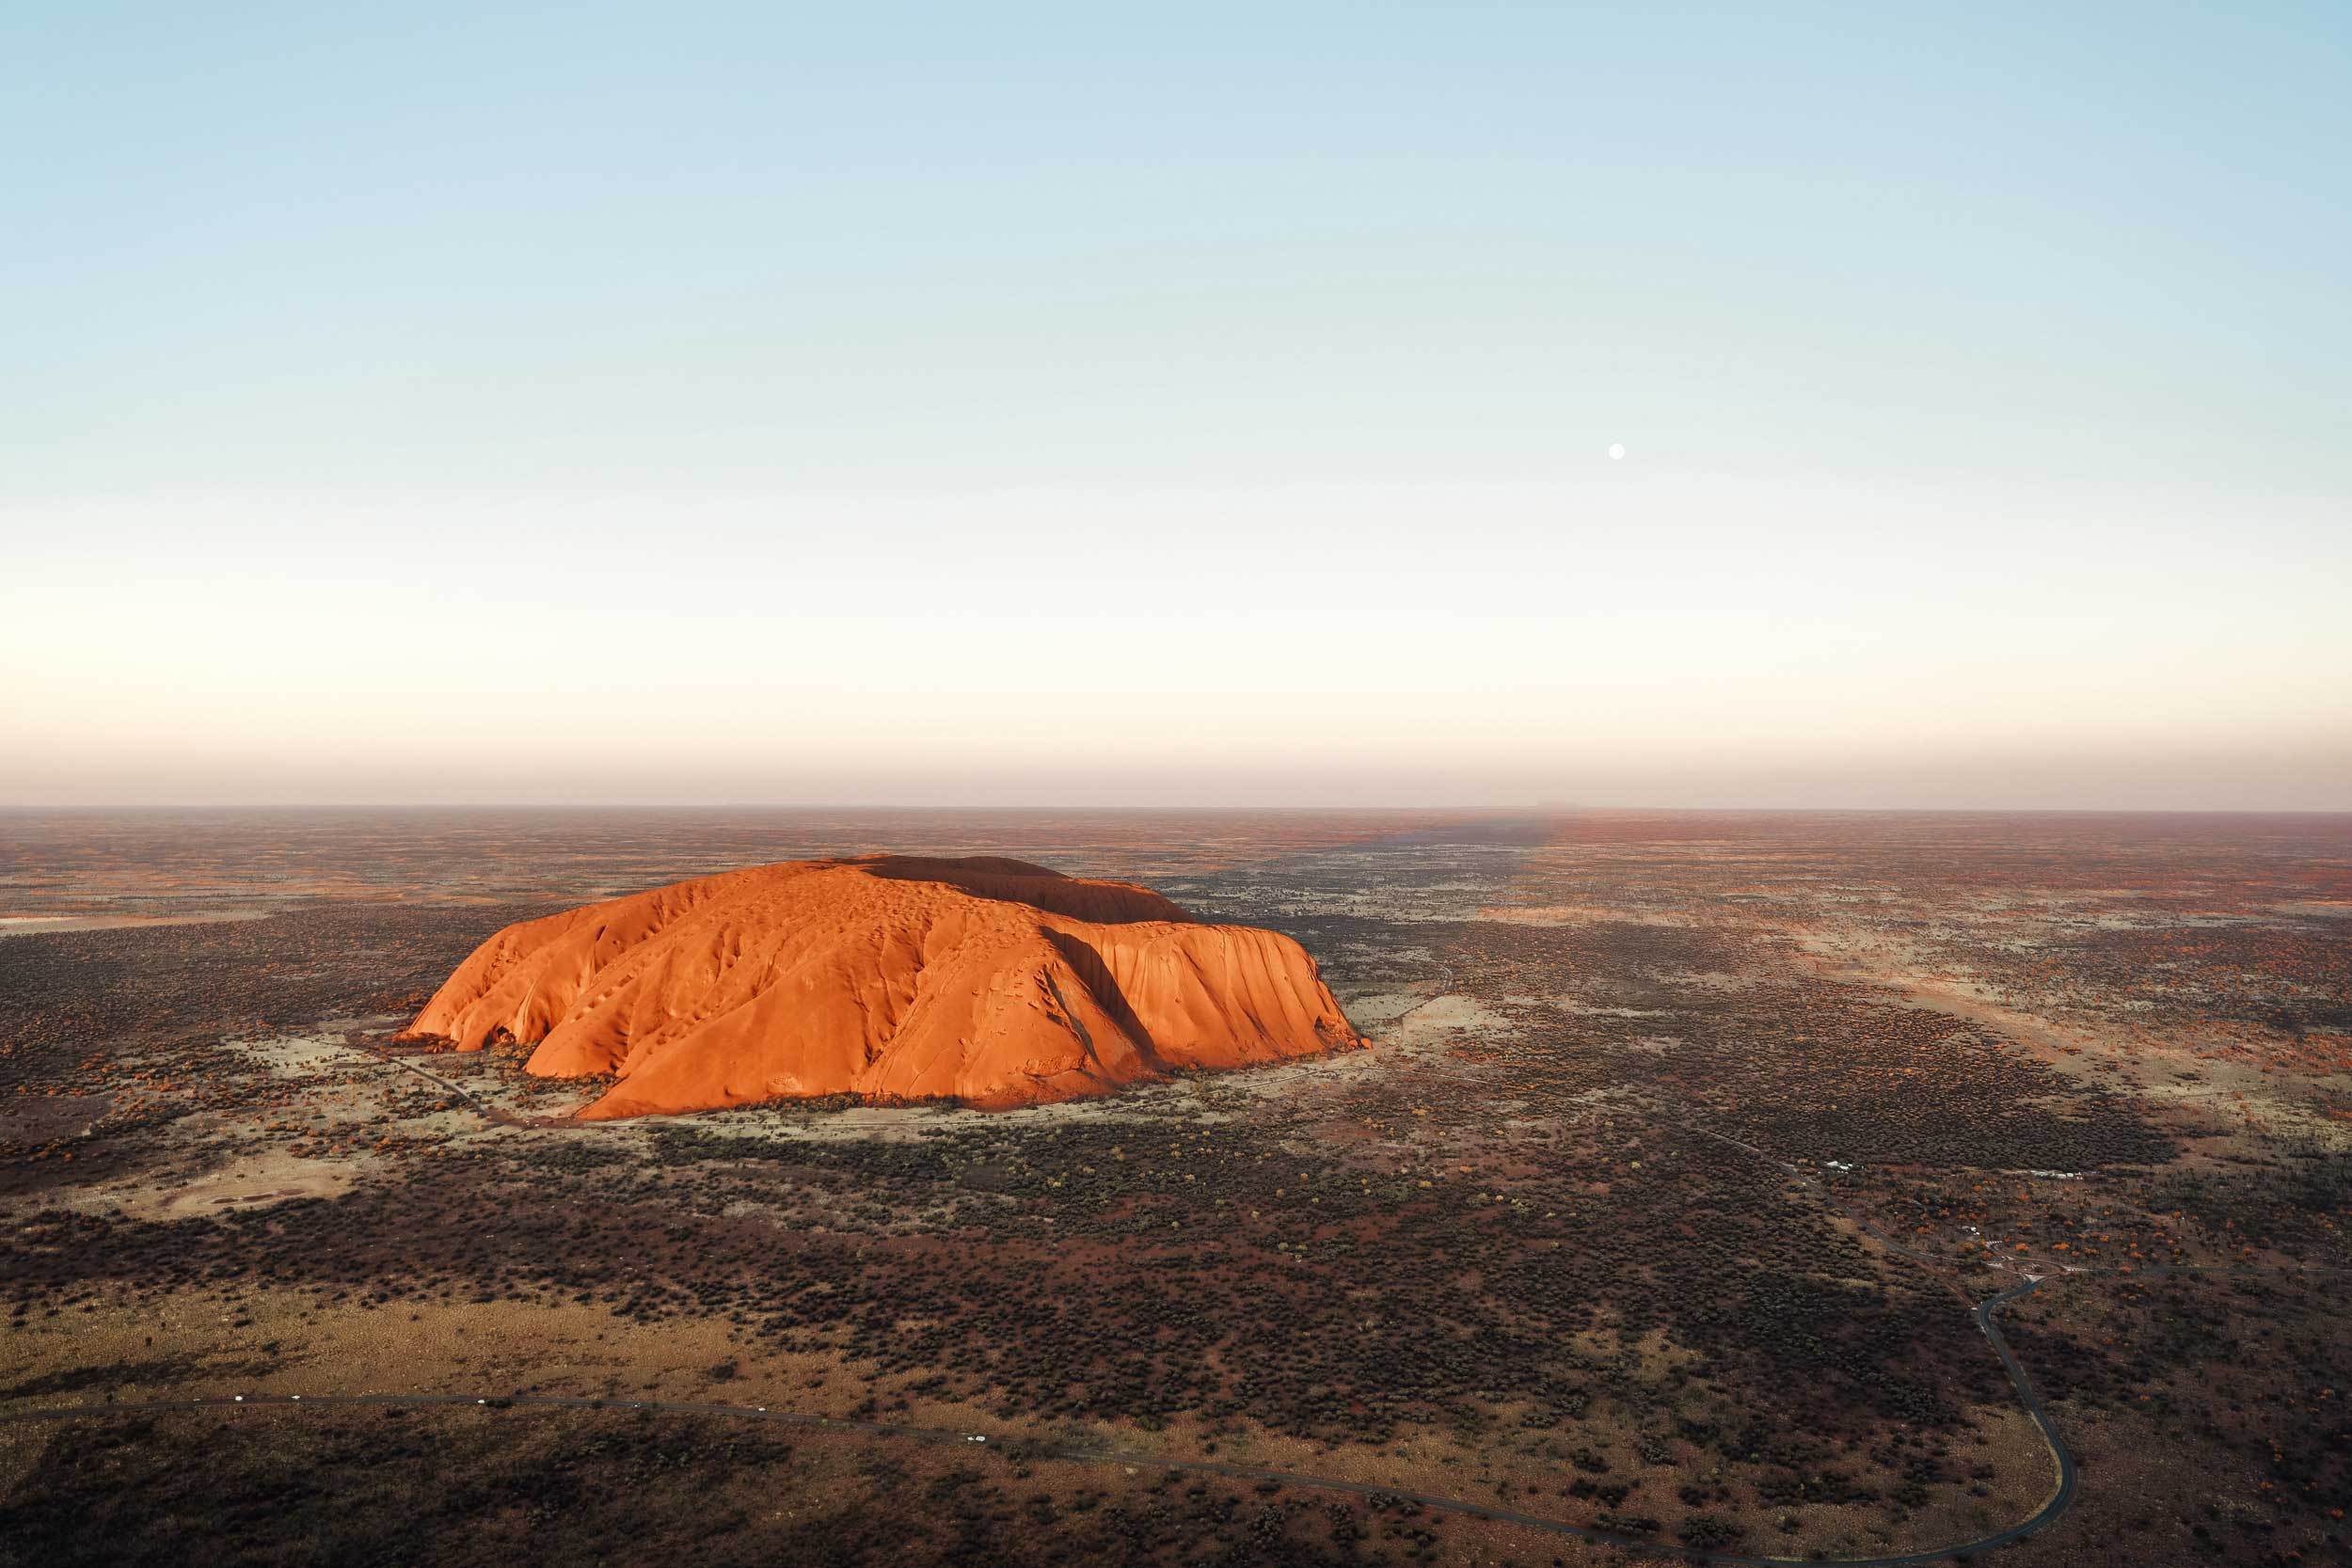 Glowing orange, immense rock in the desert, Northern Territory, Australia